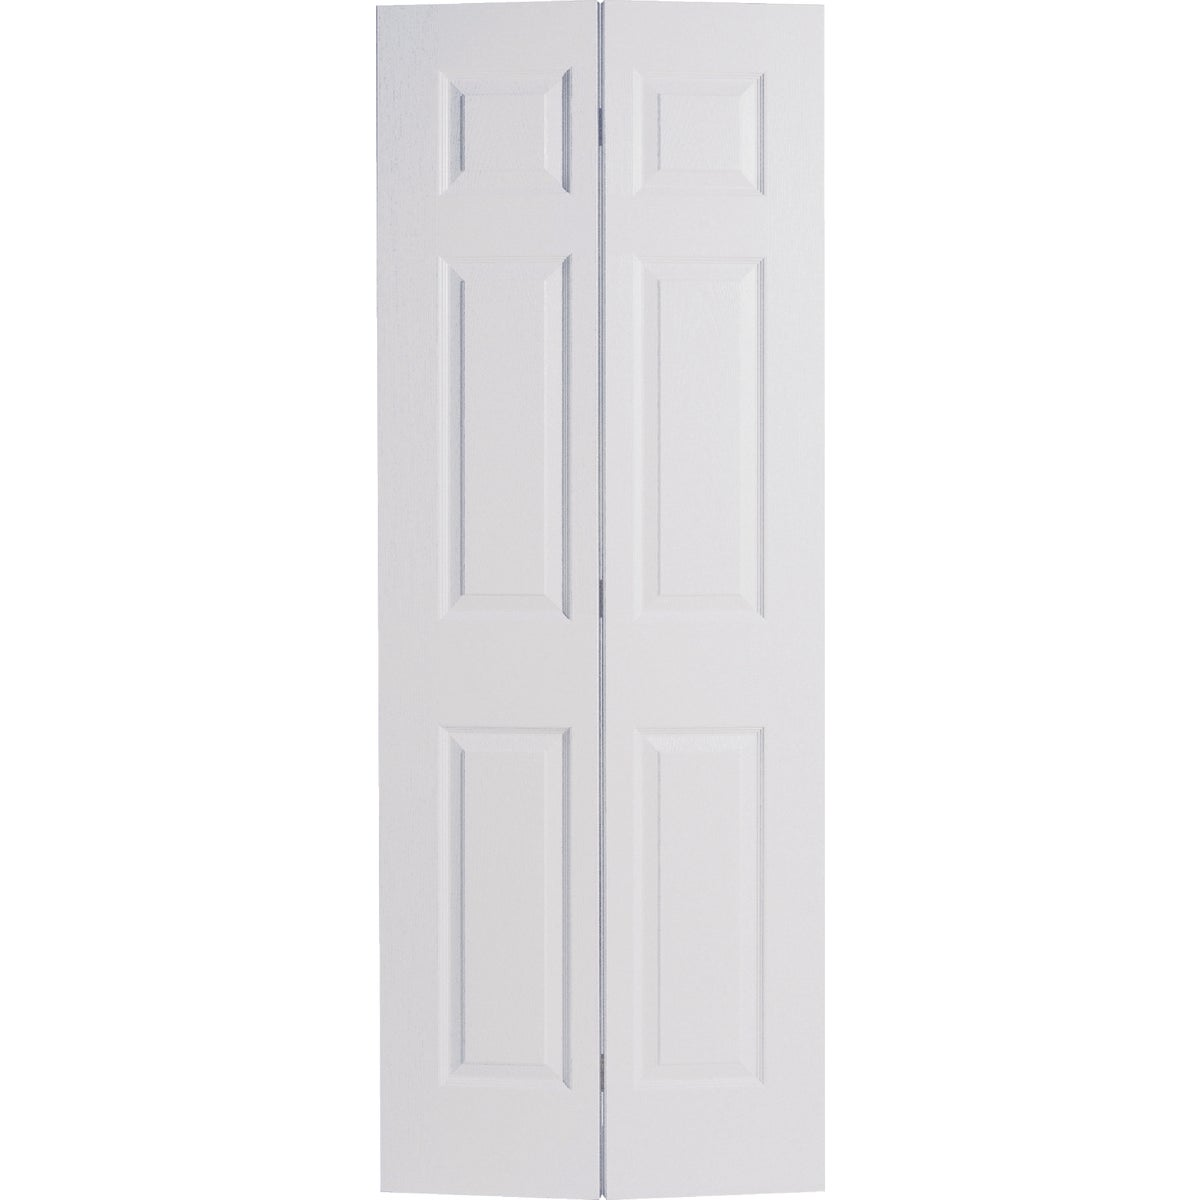 4/0 1-3/8 6PN TX BF DOOR -  by Masonite